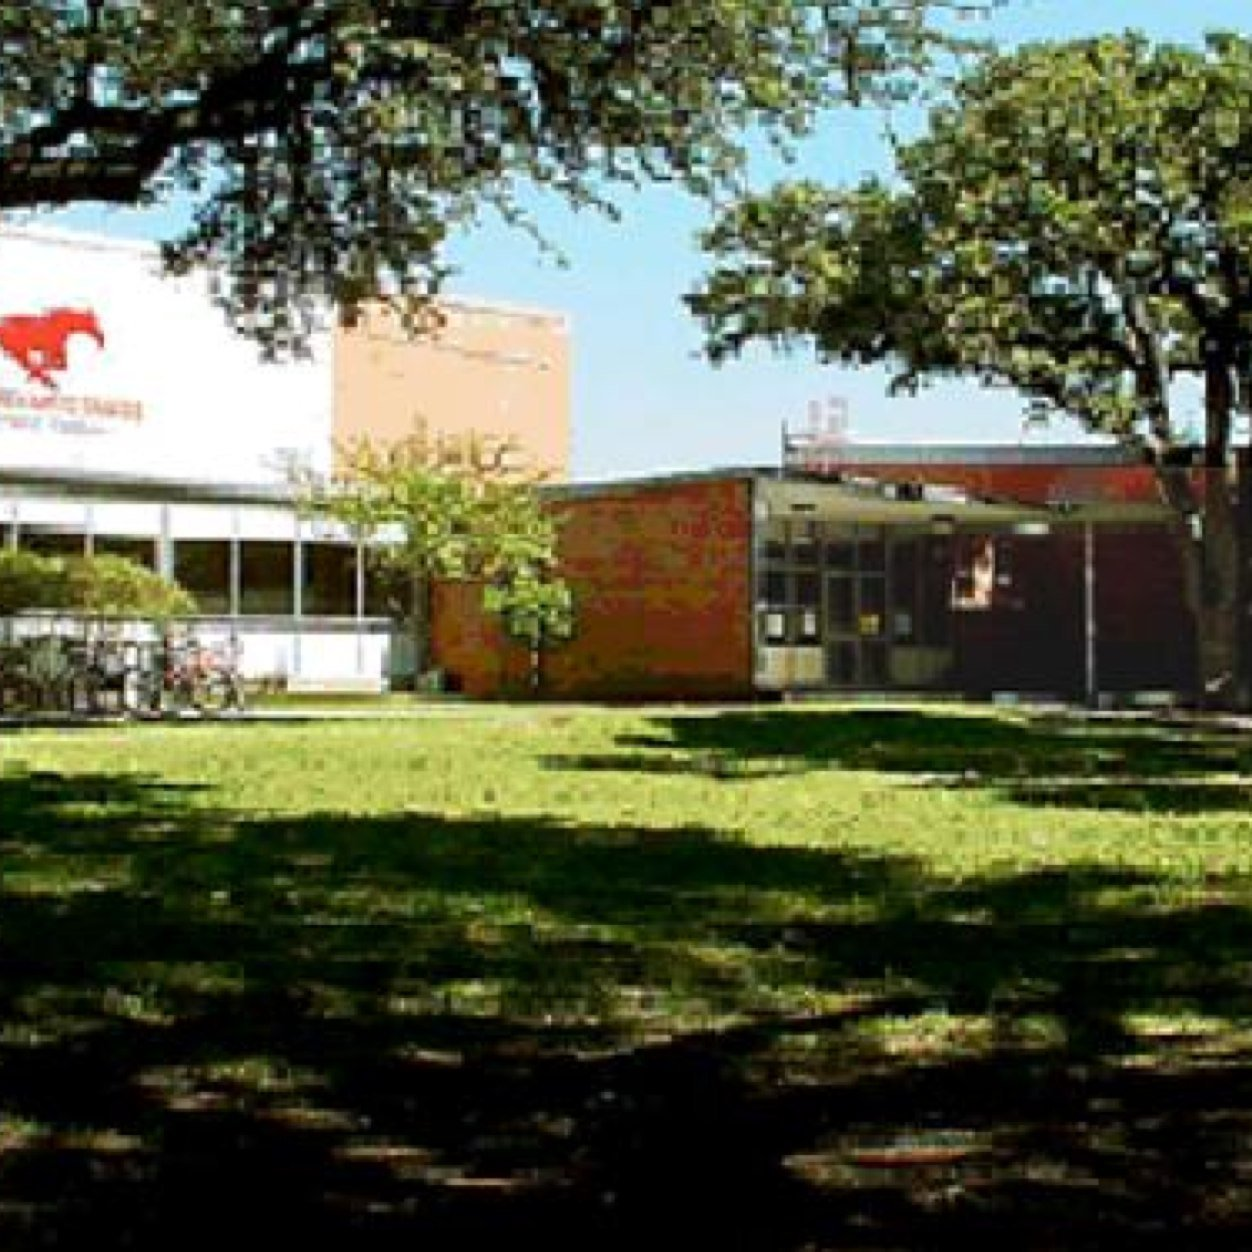 Middle School: OHenry Middle School (@Ohenryms)